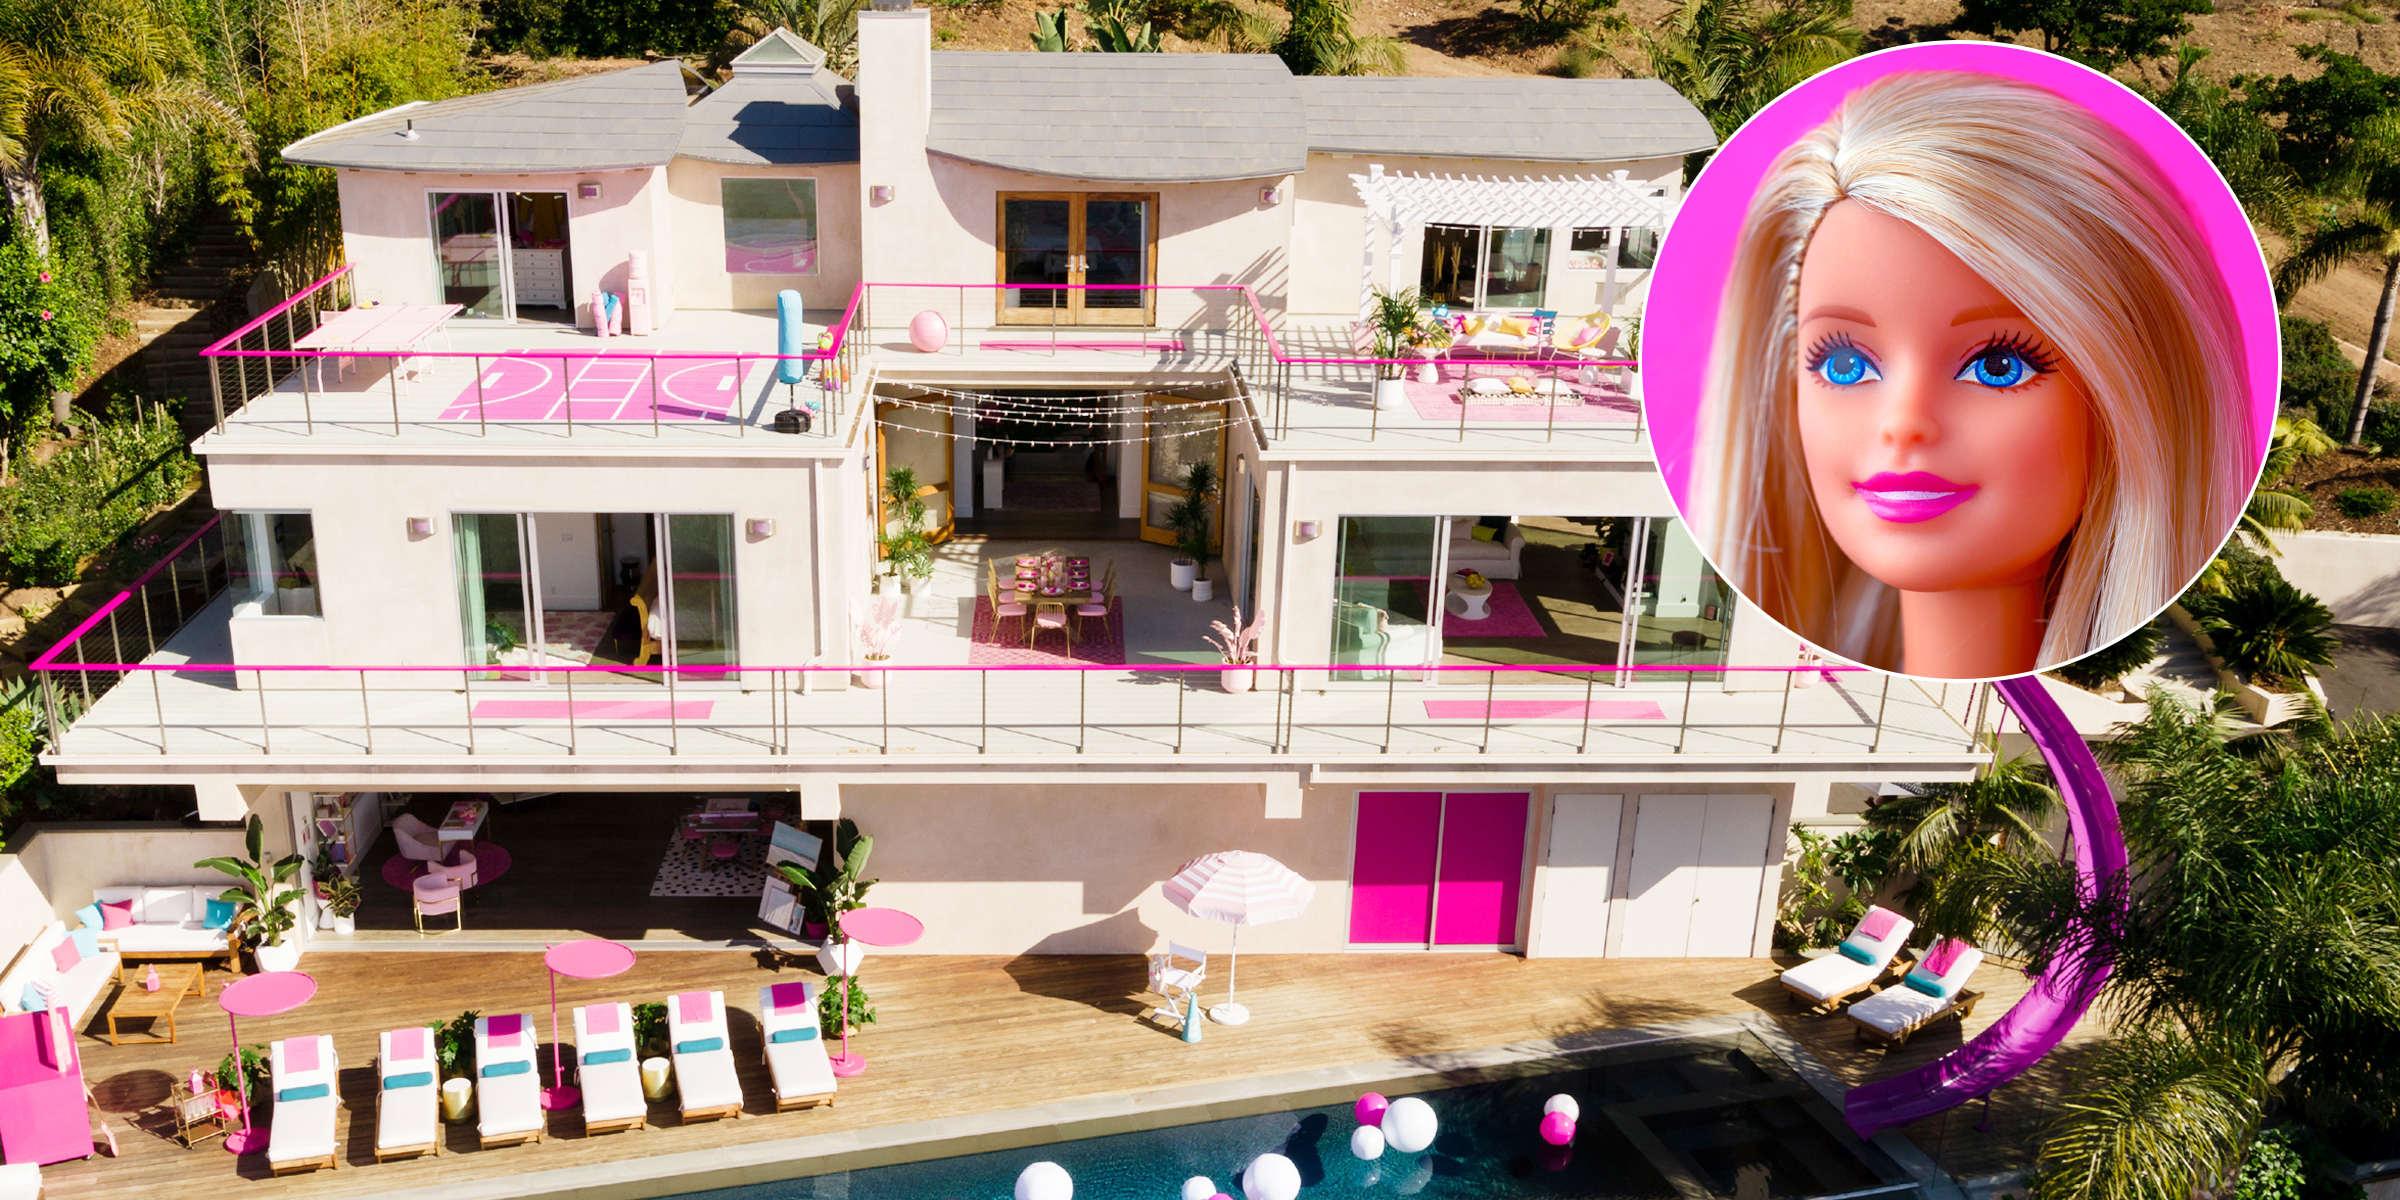 Barbie's Dreamhouse is listed on Airbnb now for the world's best sleepover